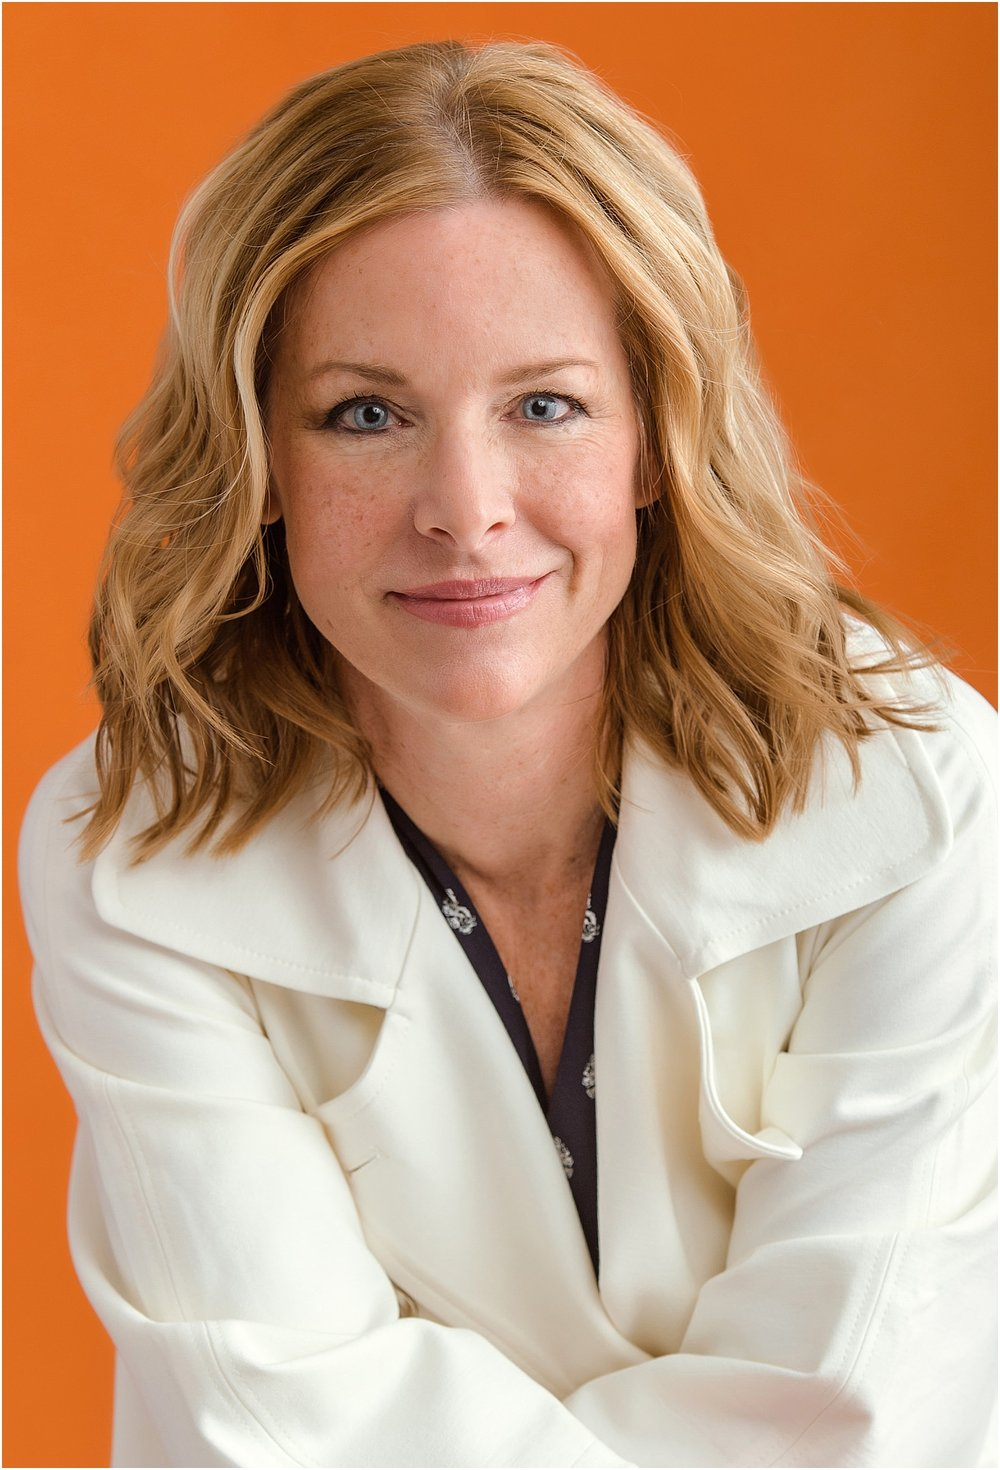 Female Consultant photographed on orange background in cream coat.jpg